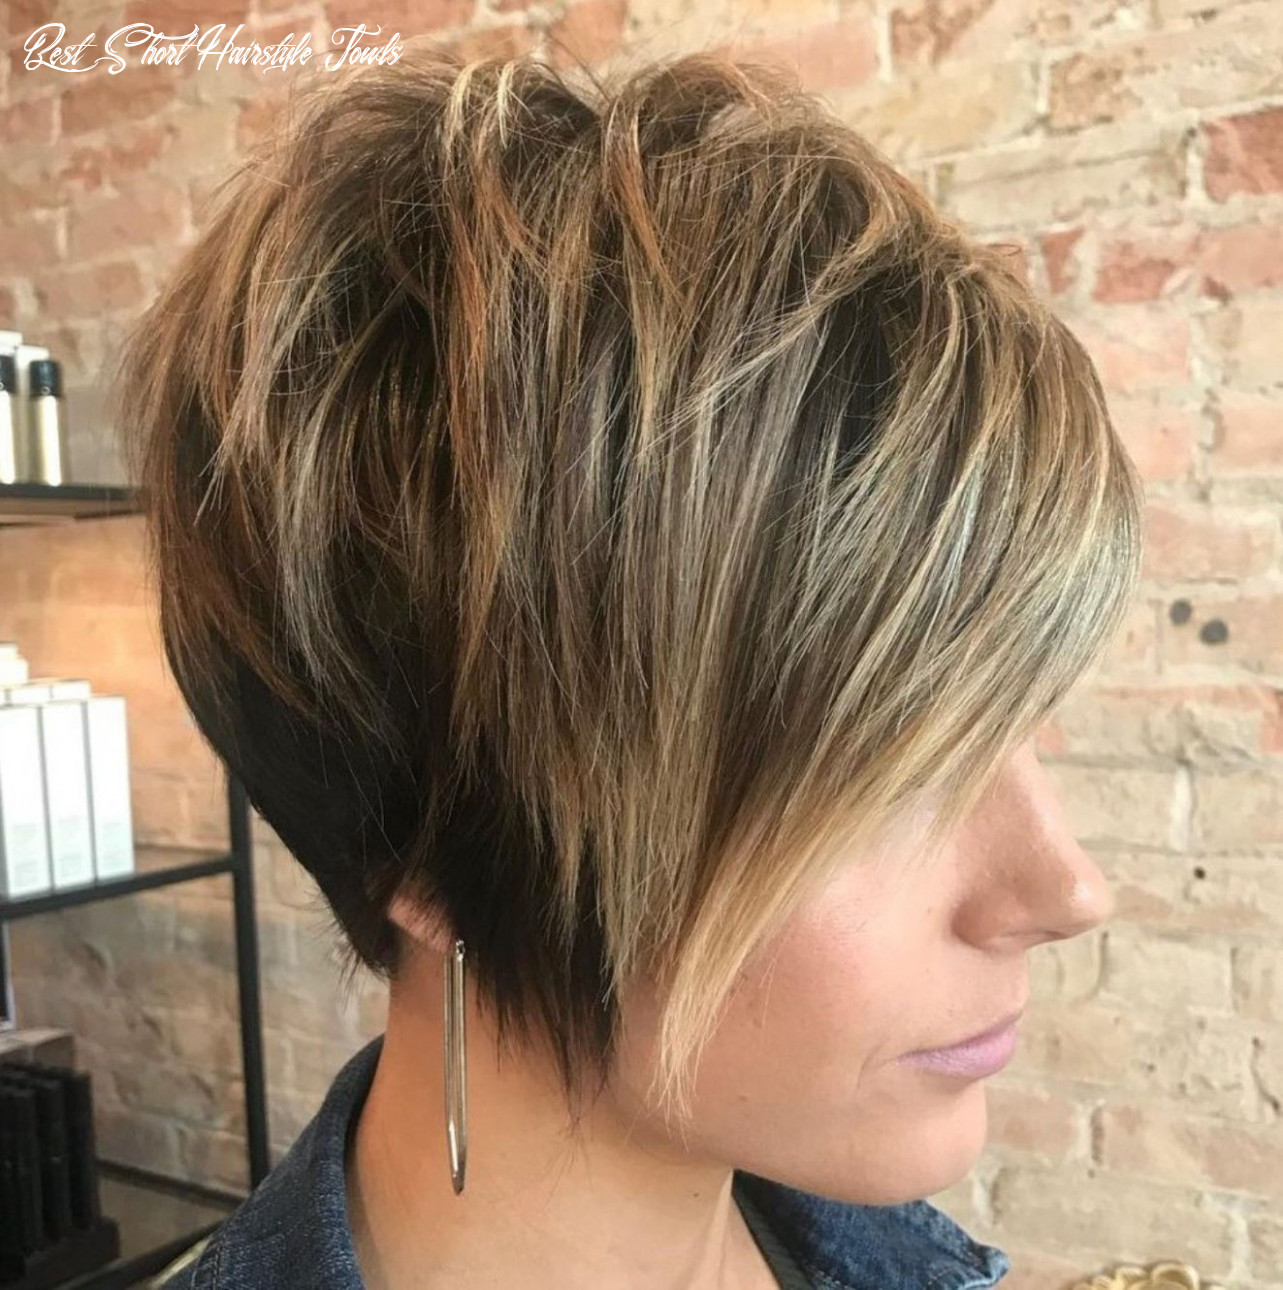 11 cute and easy to style short layered hairstyles | short